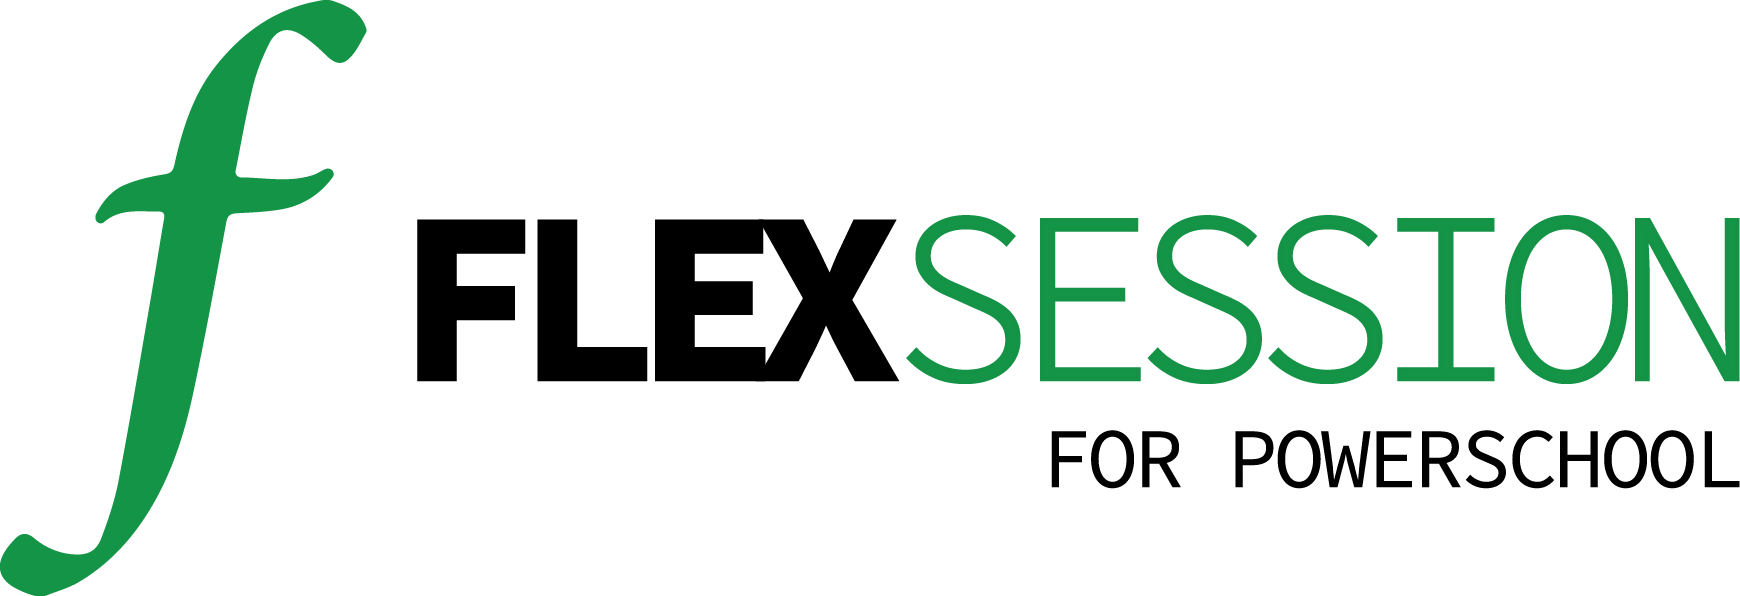 FleSession_logo.png